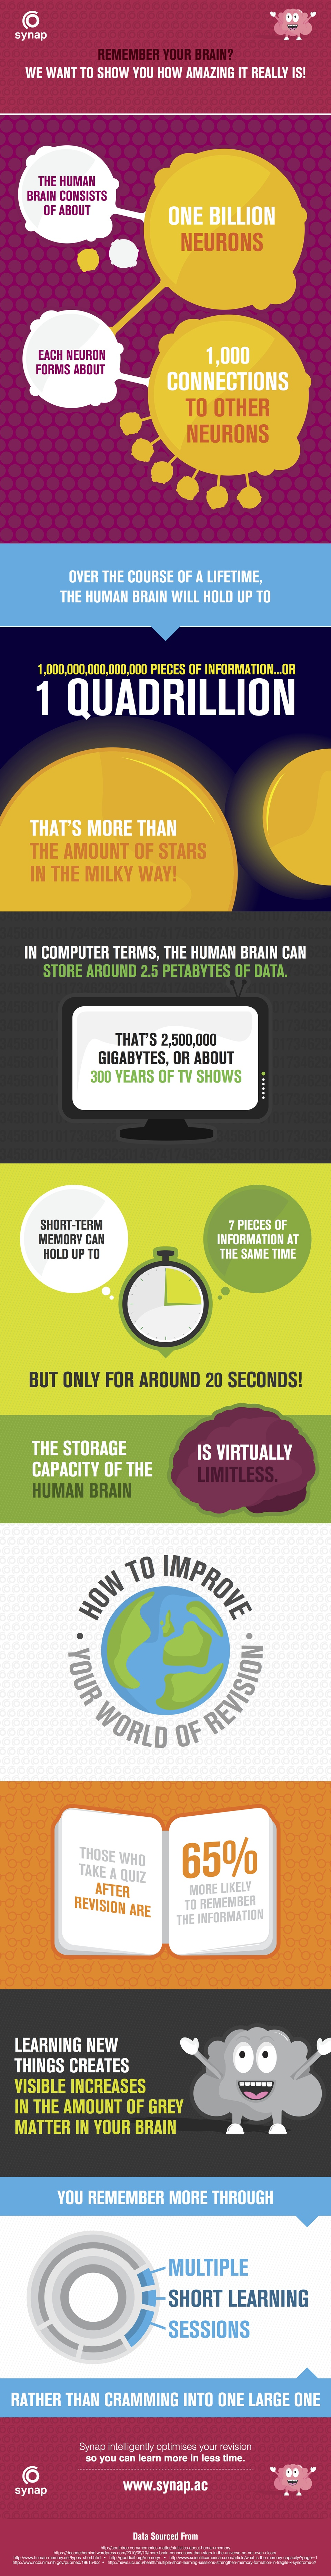 Your Amazing Memory Infographic